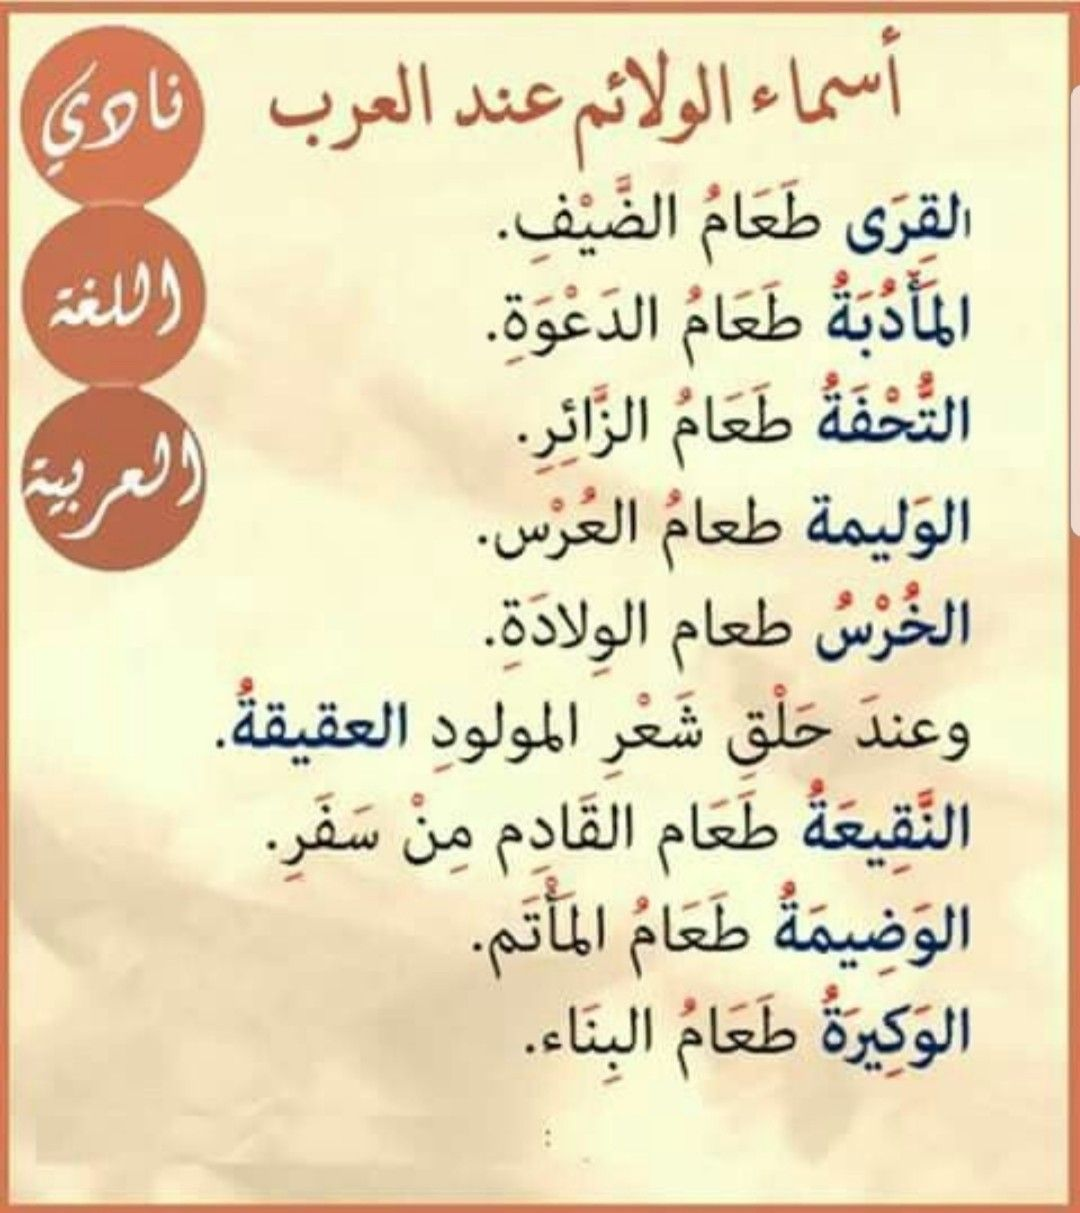 Pin By Uzair Shaikh On معلومات عامه لغه عربيه Life Lesson Quotes Words Quotes Words